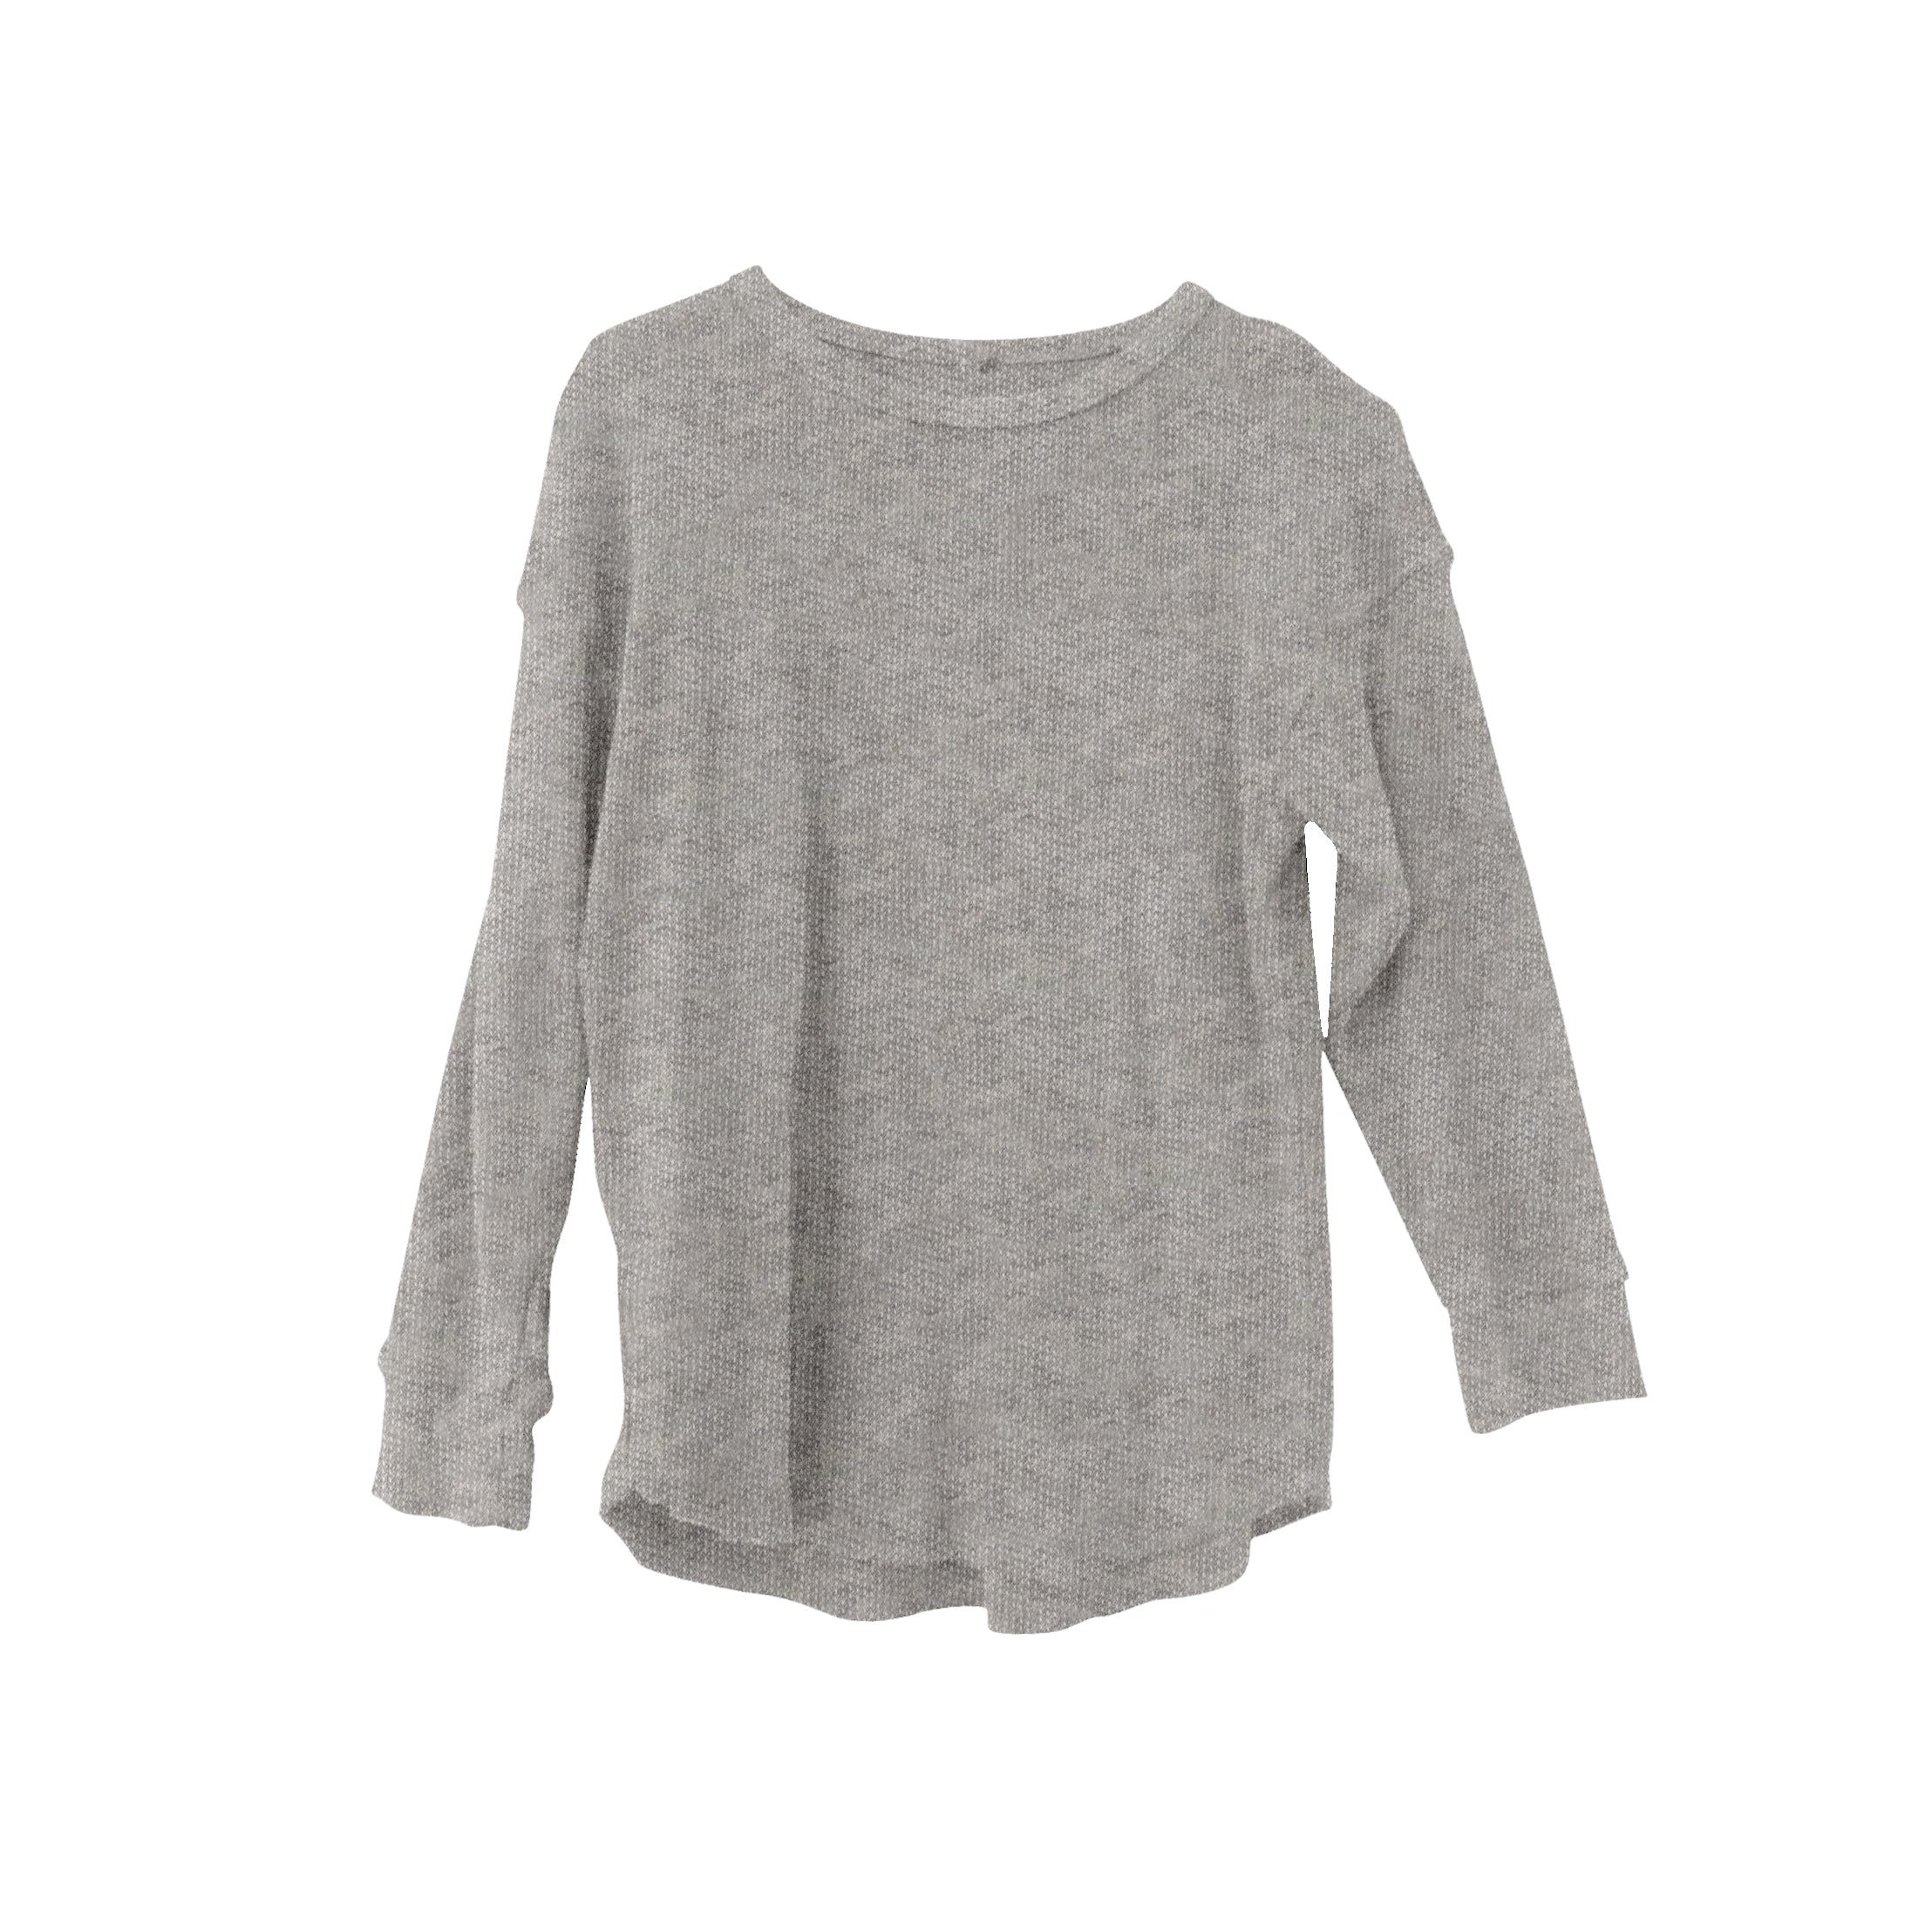 New Nico Nico Cameryn Kid's Long Sleeve Tee Heather Grey | BIEN BIEN